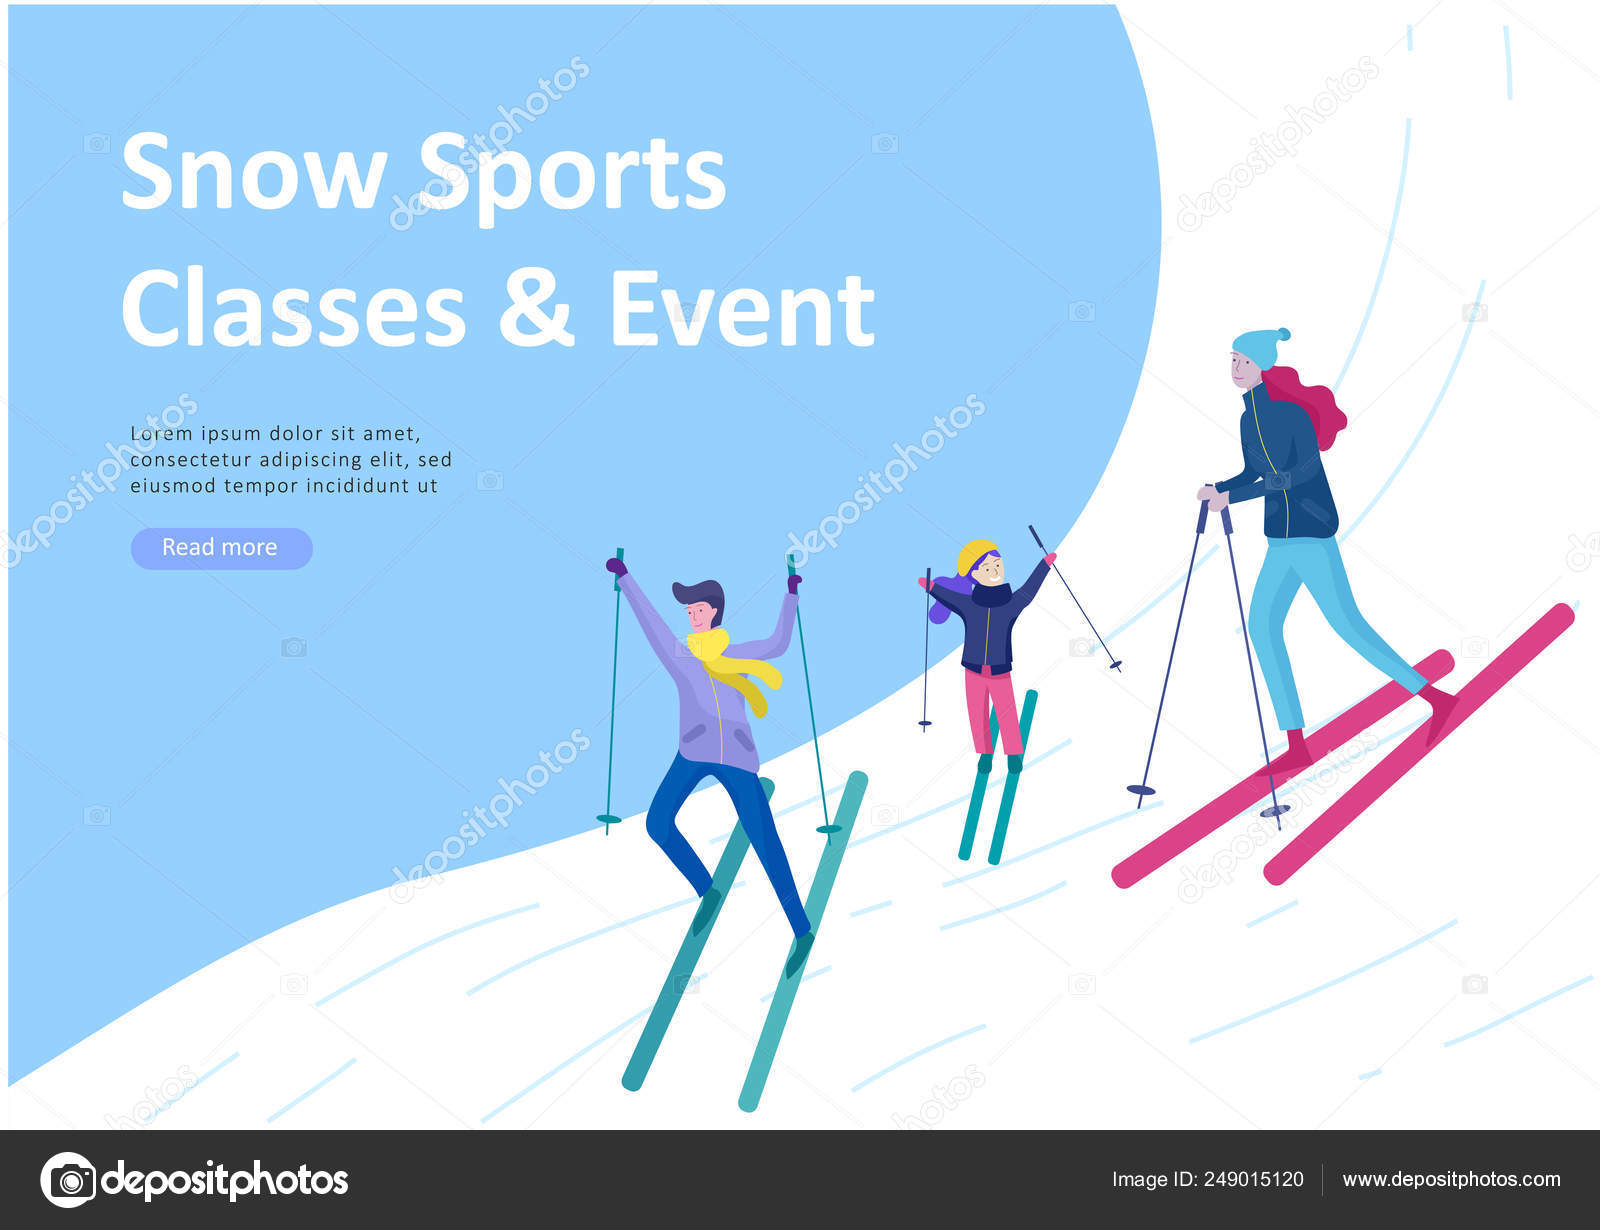 7b20d3827f People dressed in winter clothes or outerwear performing outdoor activities  fun. Snow festival